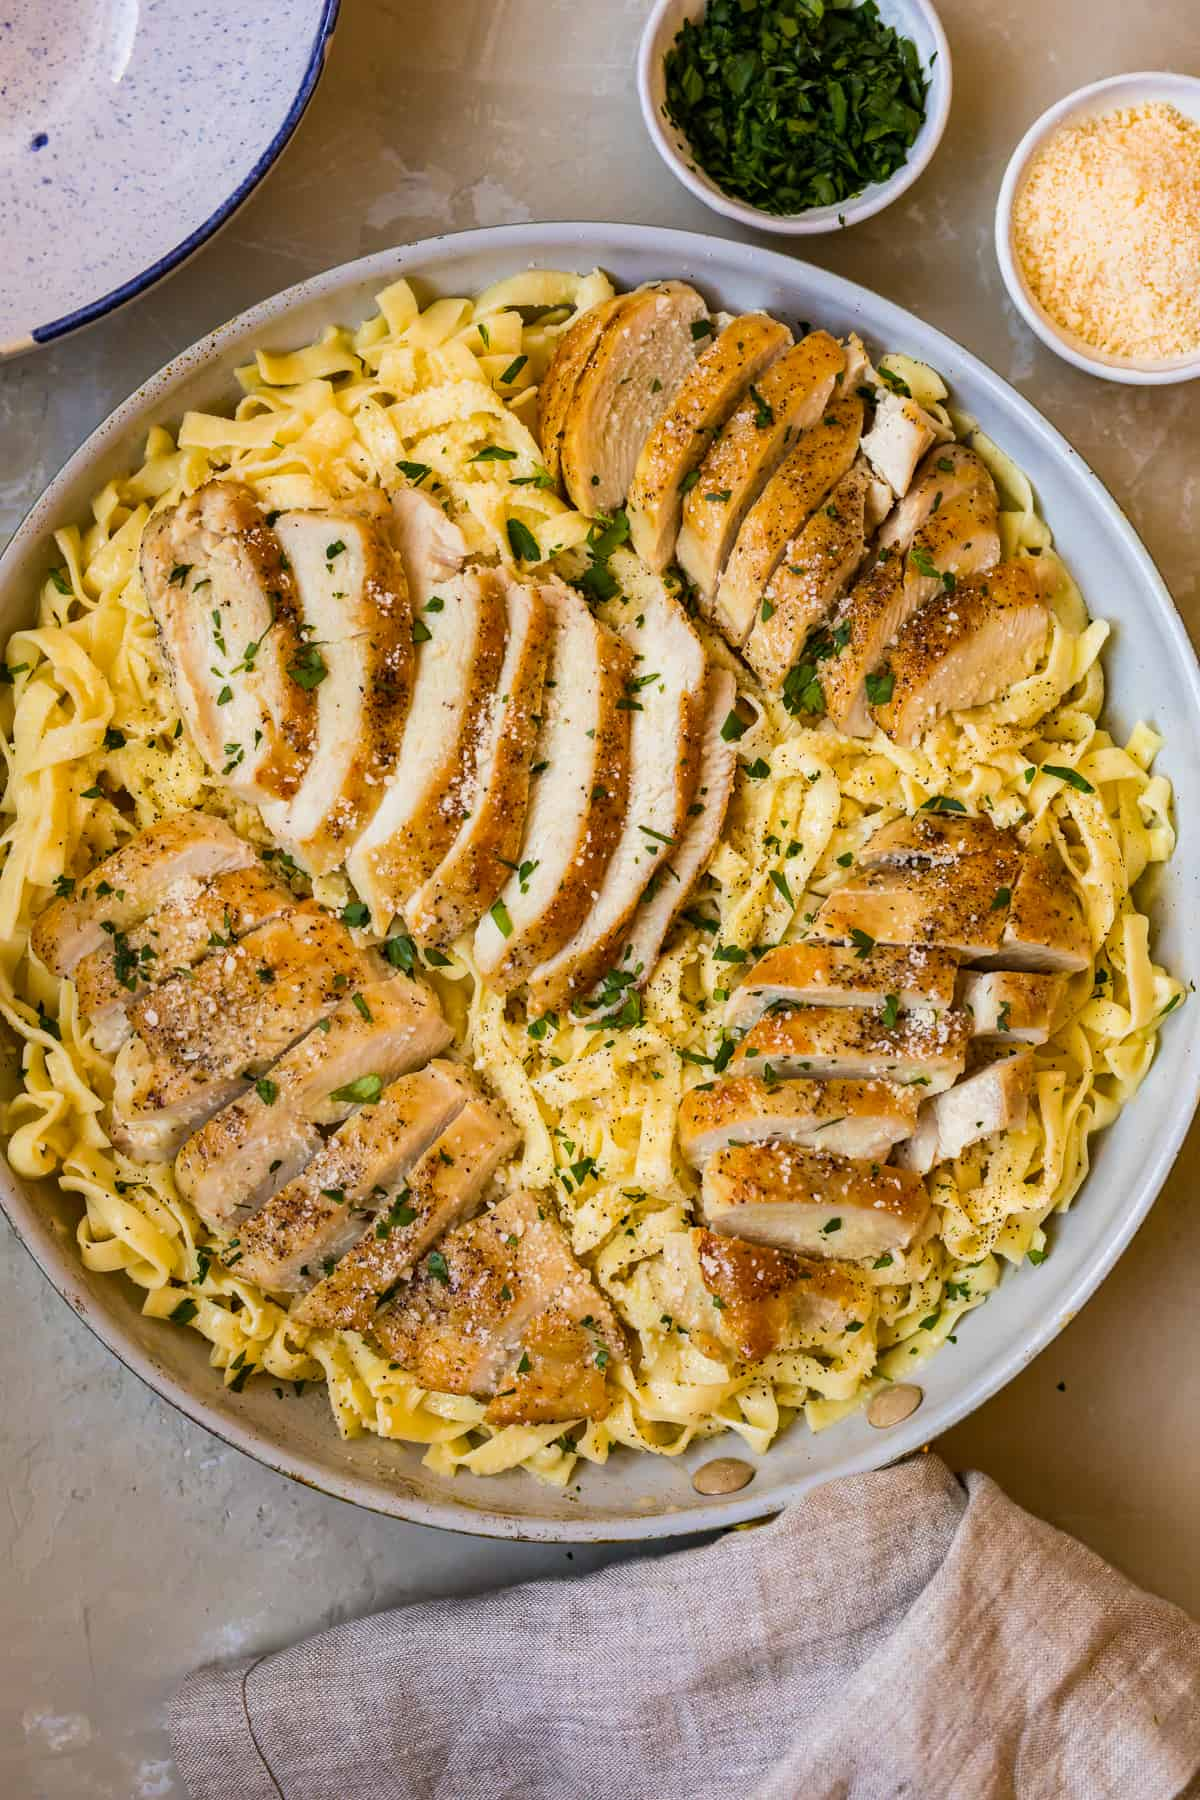 Sliced chicken breast on top of the pasta